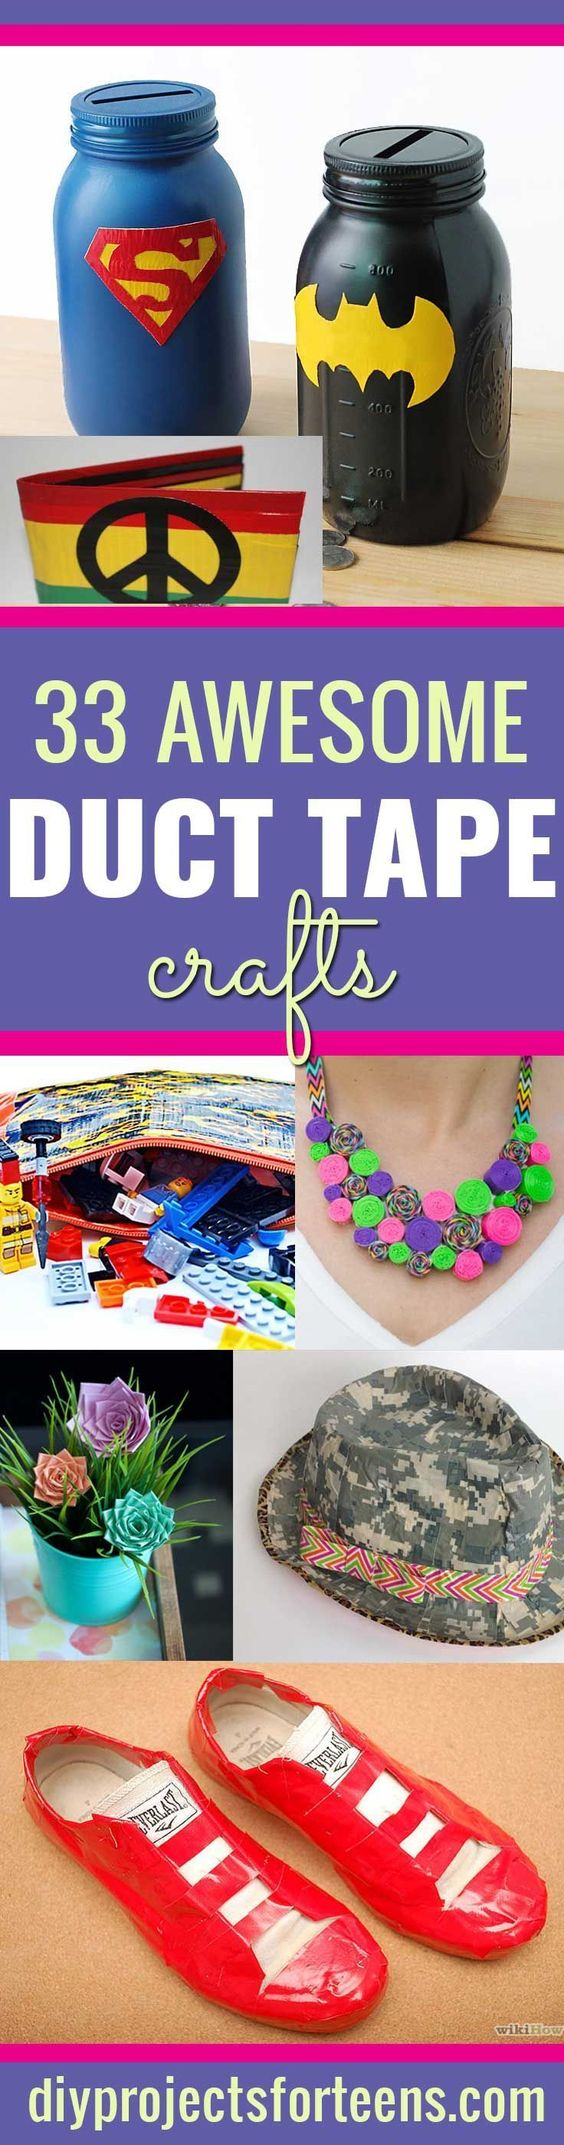 tape craft ideas 33 awesome diy duct projects and crafts duct 3051